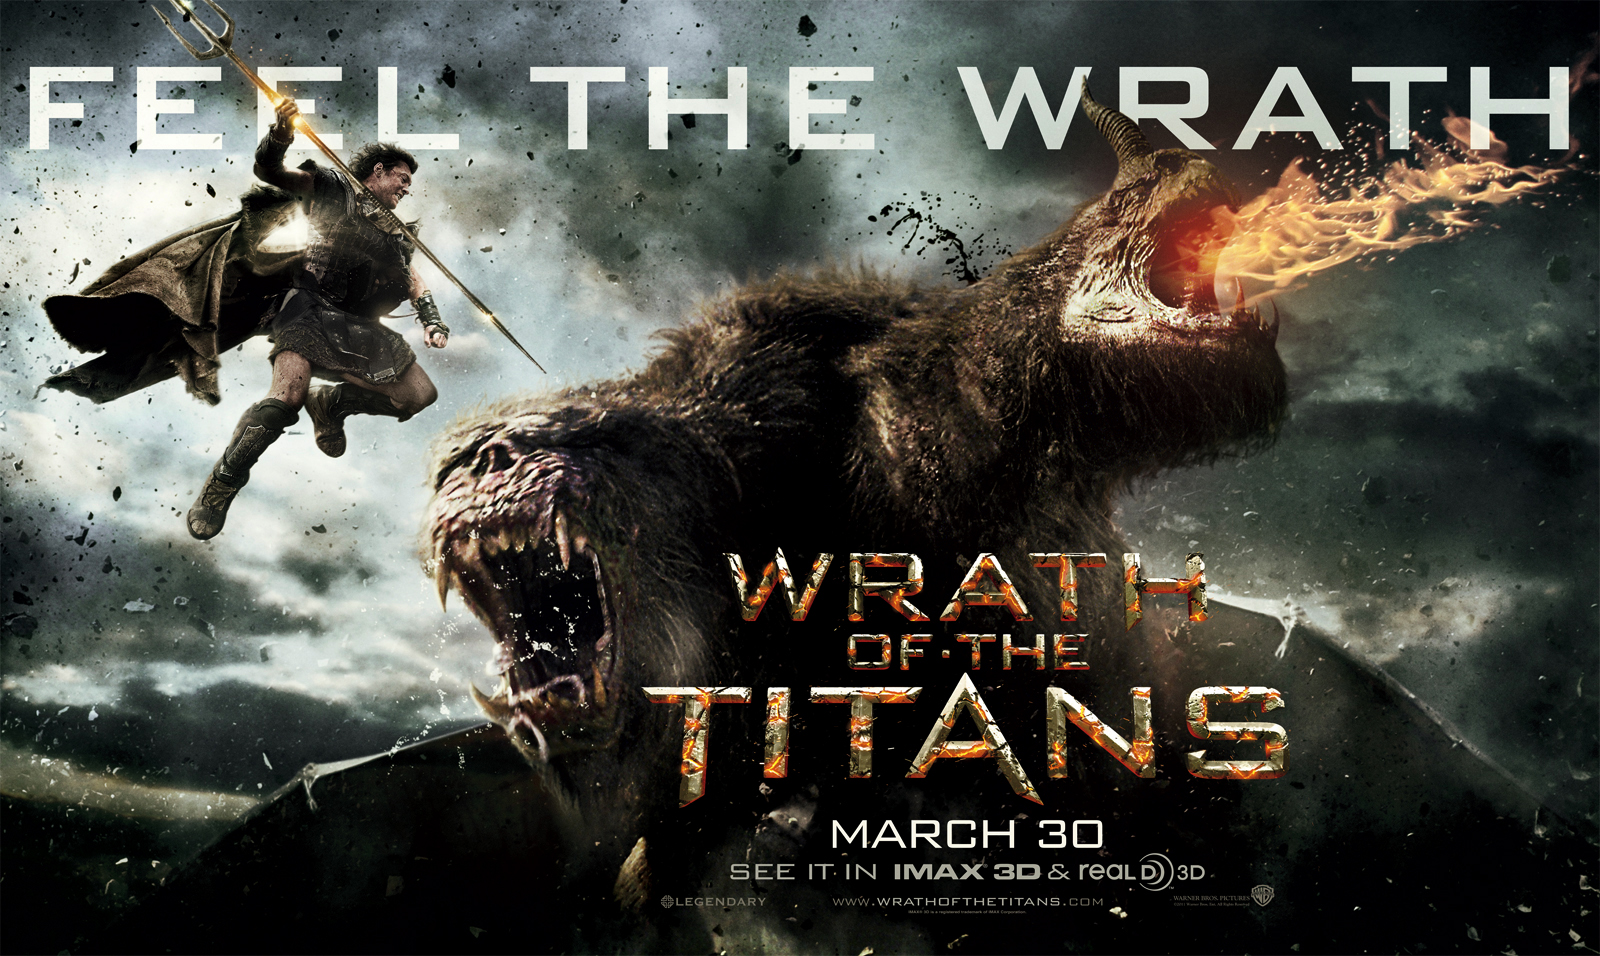 http://2.bp.blogspot.com/-rSTDBK6QQRo/TvAQCf15wiI/AAAAAAAAfAQ/Rv4_OUfql28/s1600/wrath-of-the-titans.jpg